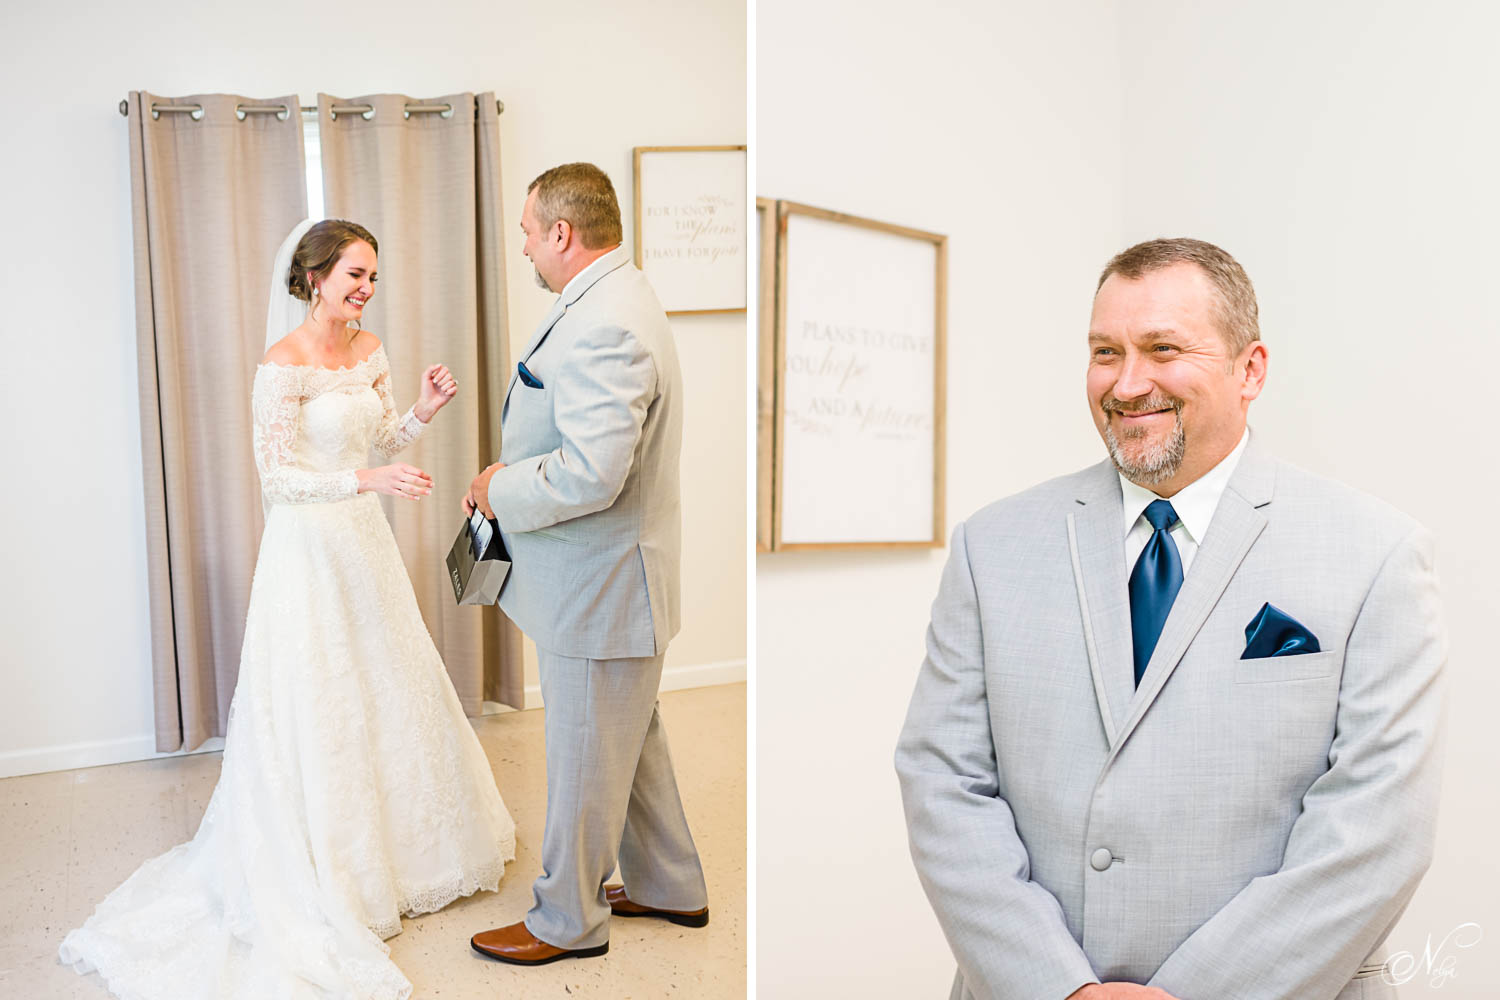 bride's dad seeing her in her wedding dress for the first time. And dad just standing there all dressed up in his suit smiling and trying not to cry.